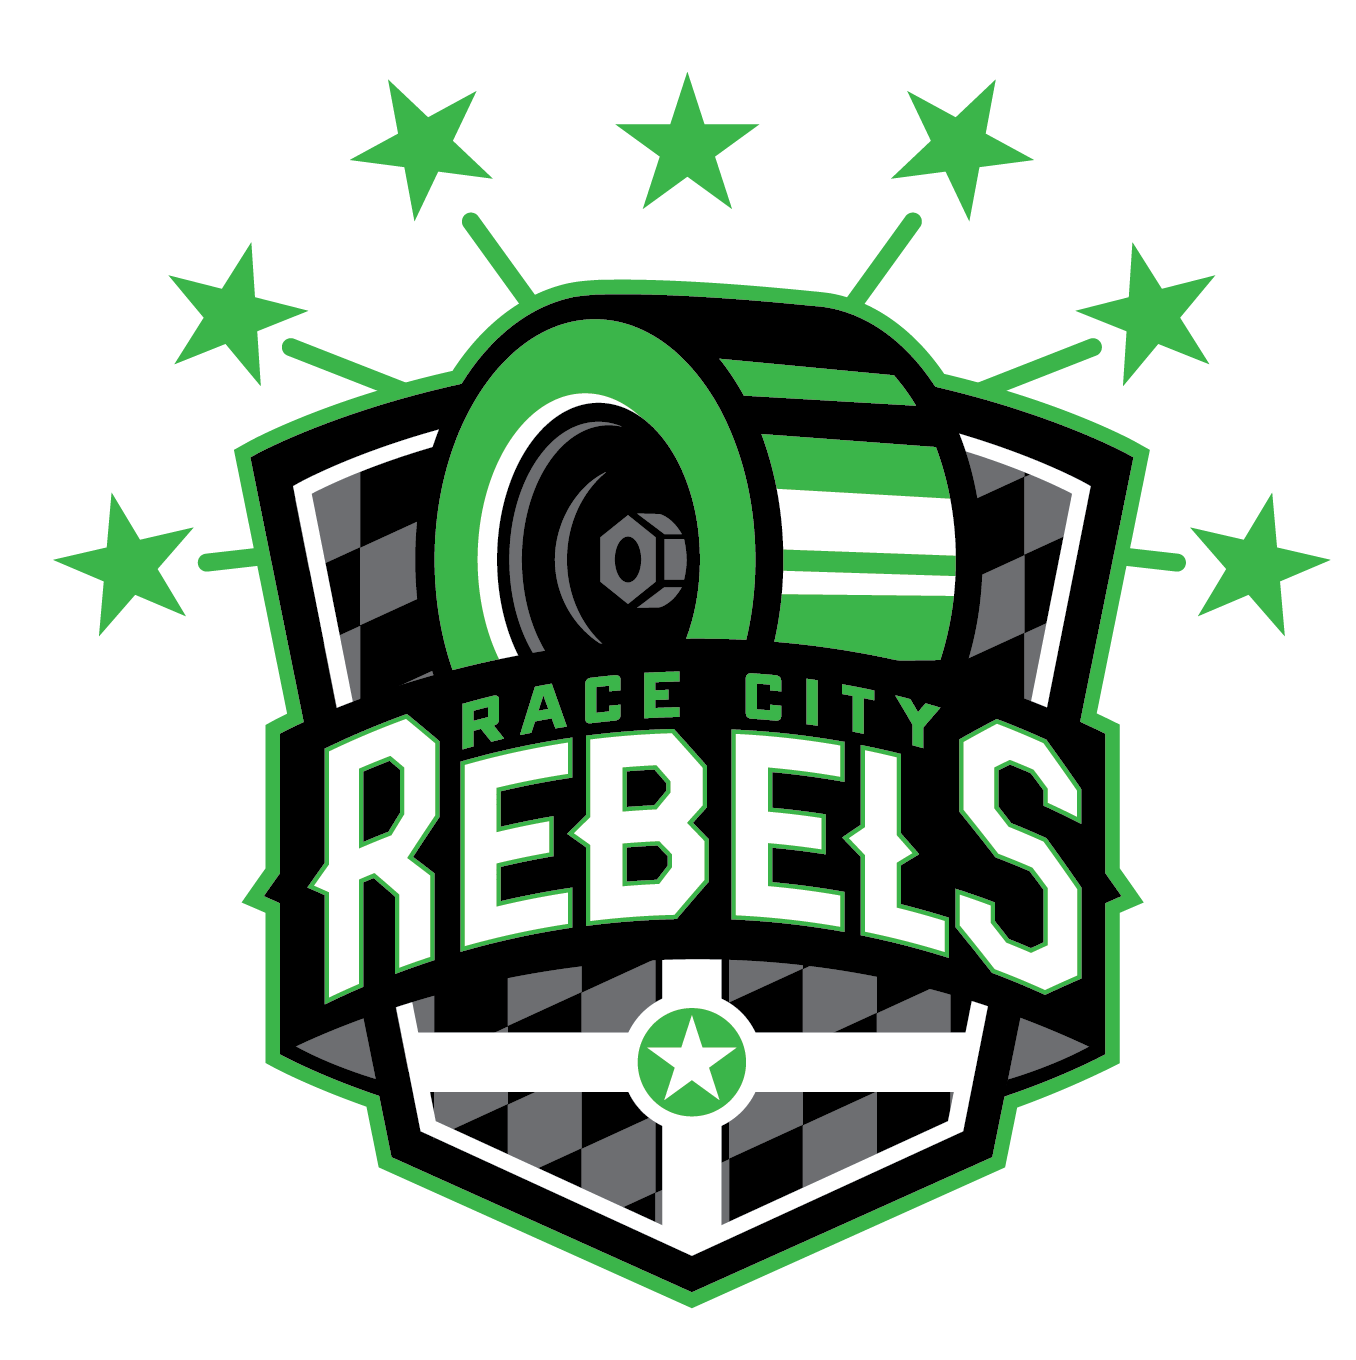 Race City Rebels